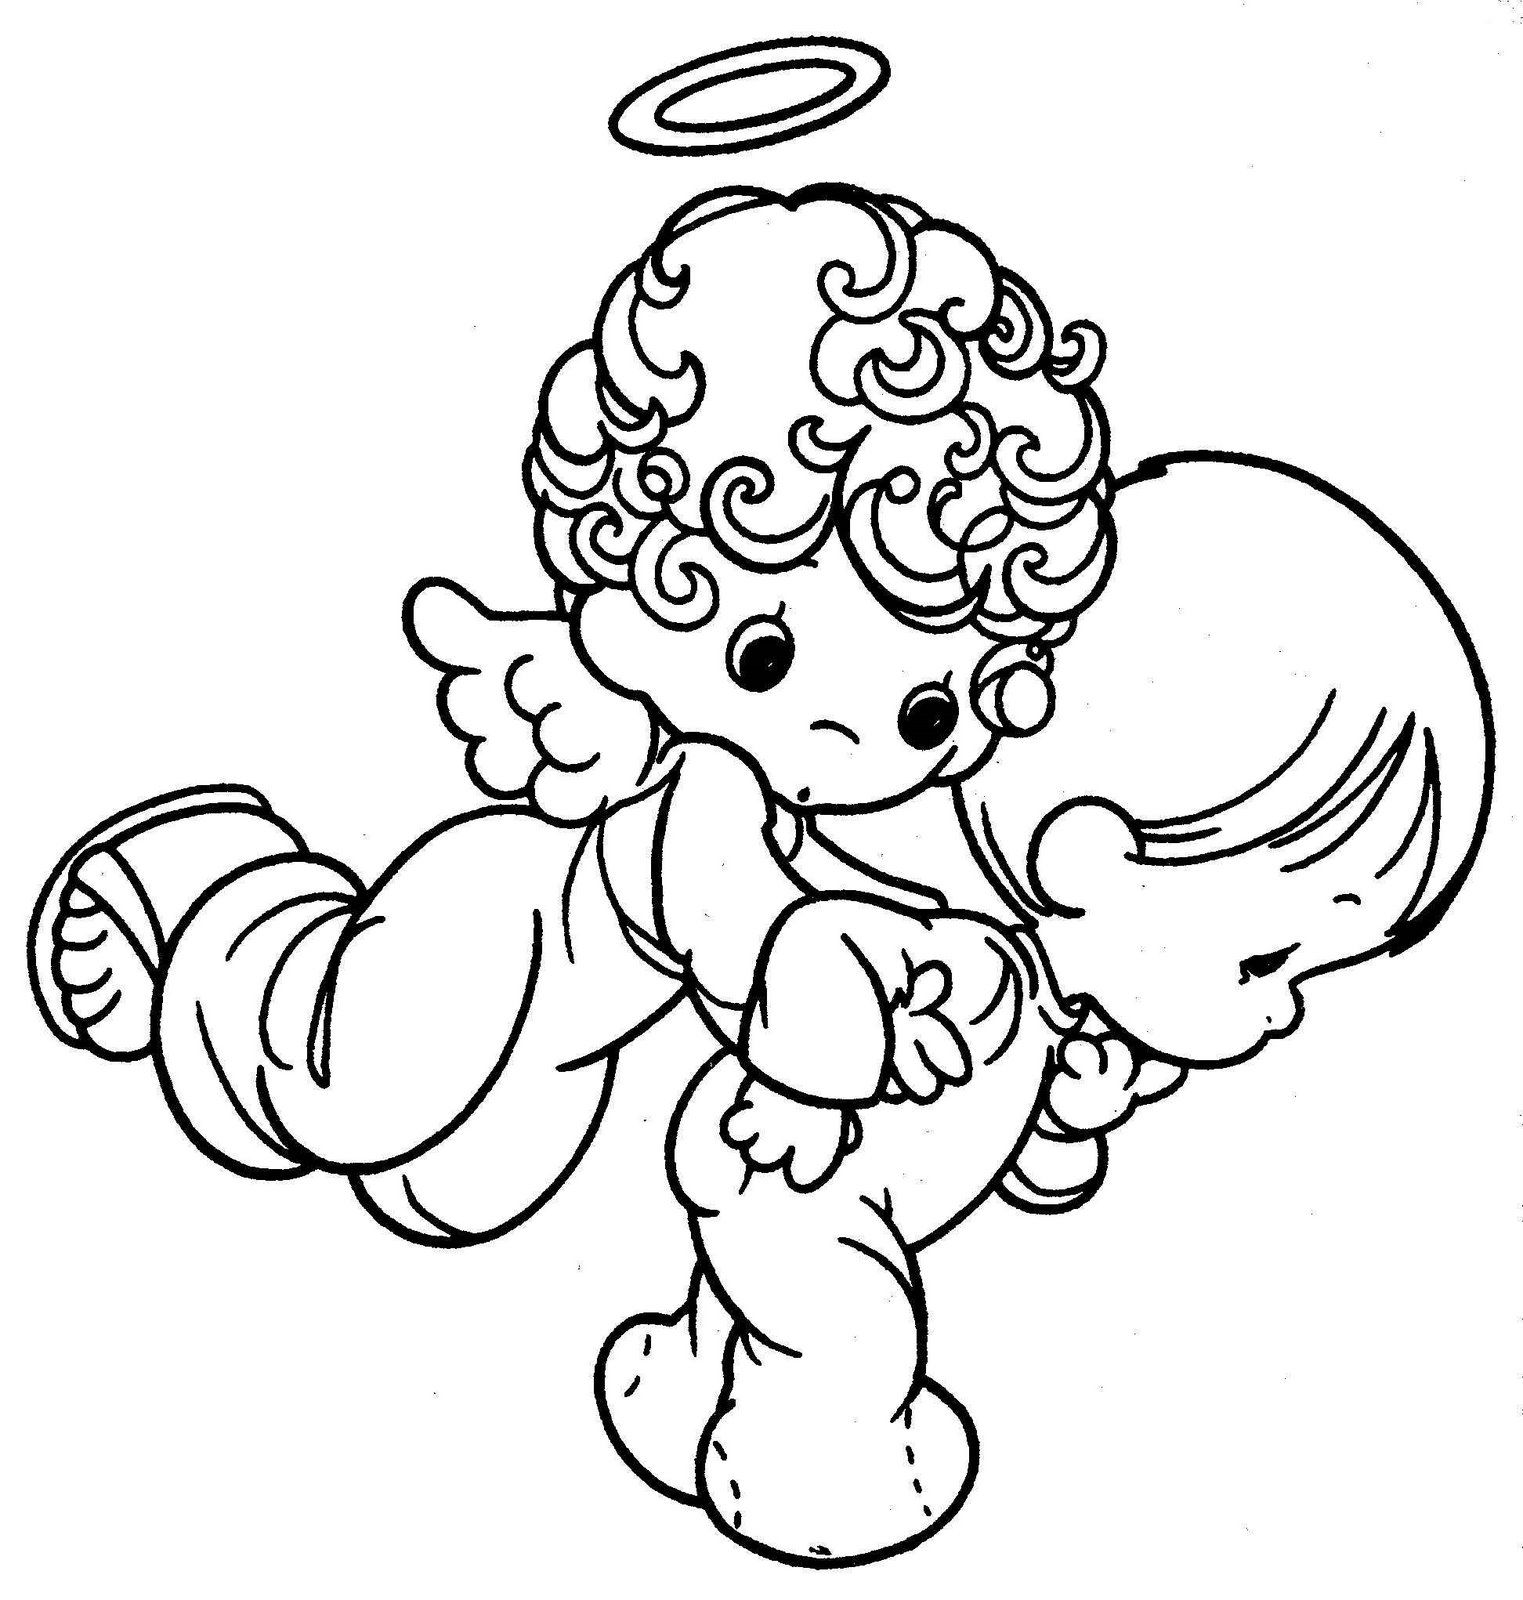 mother coloring pages | Preciosos Momentos: Angel Cargando a un niño ...